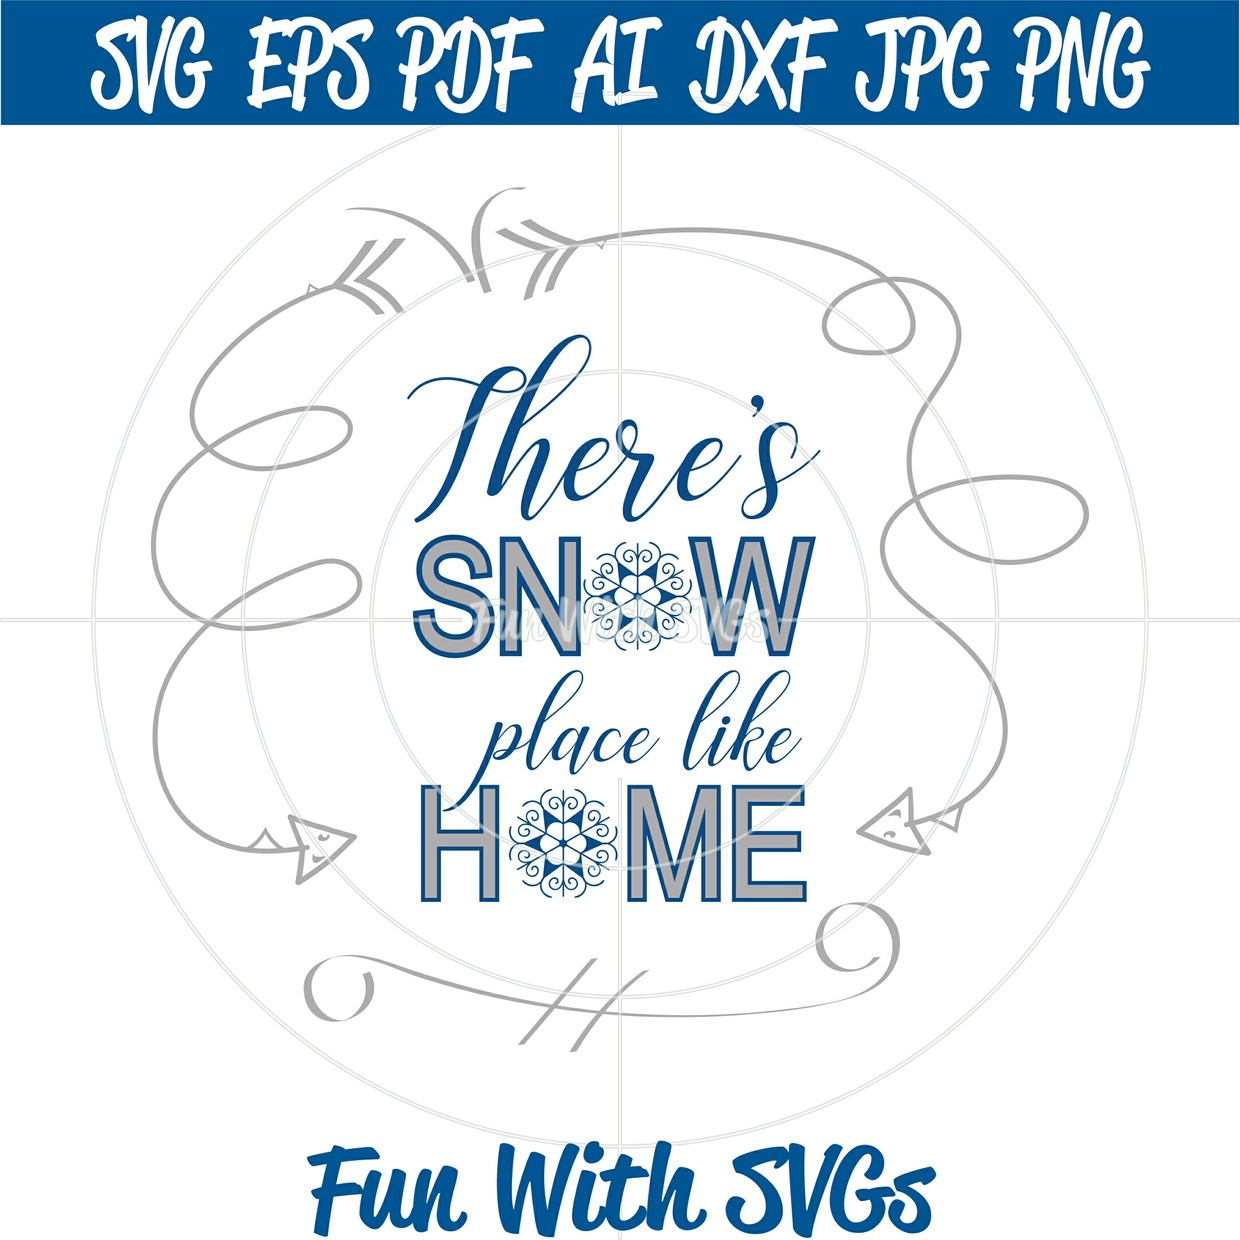 SVG File, Christmas SVG Files, Christmas Decorations, Cricut, Silhouette, Snow Place Like Home